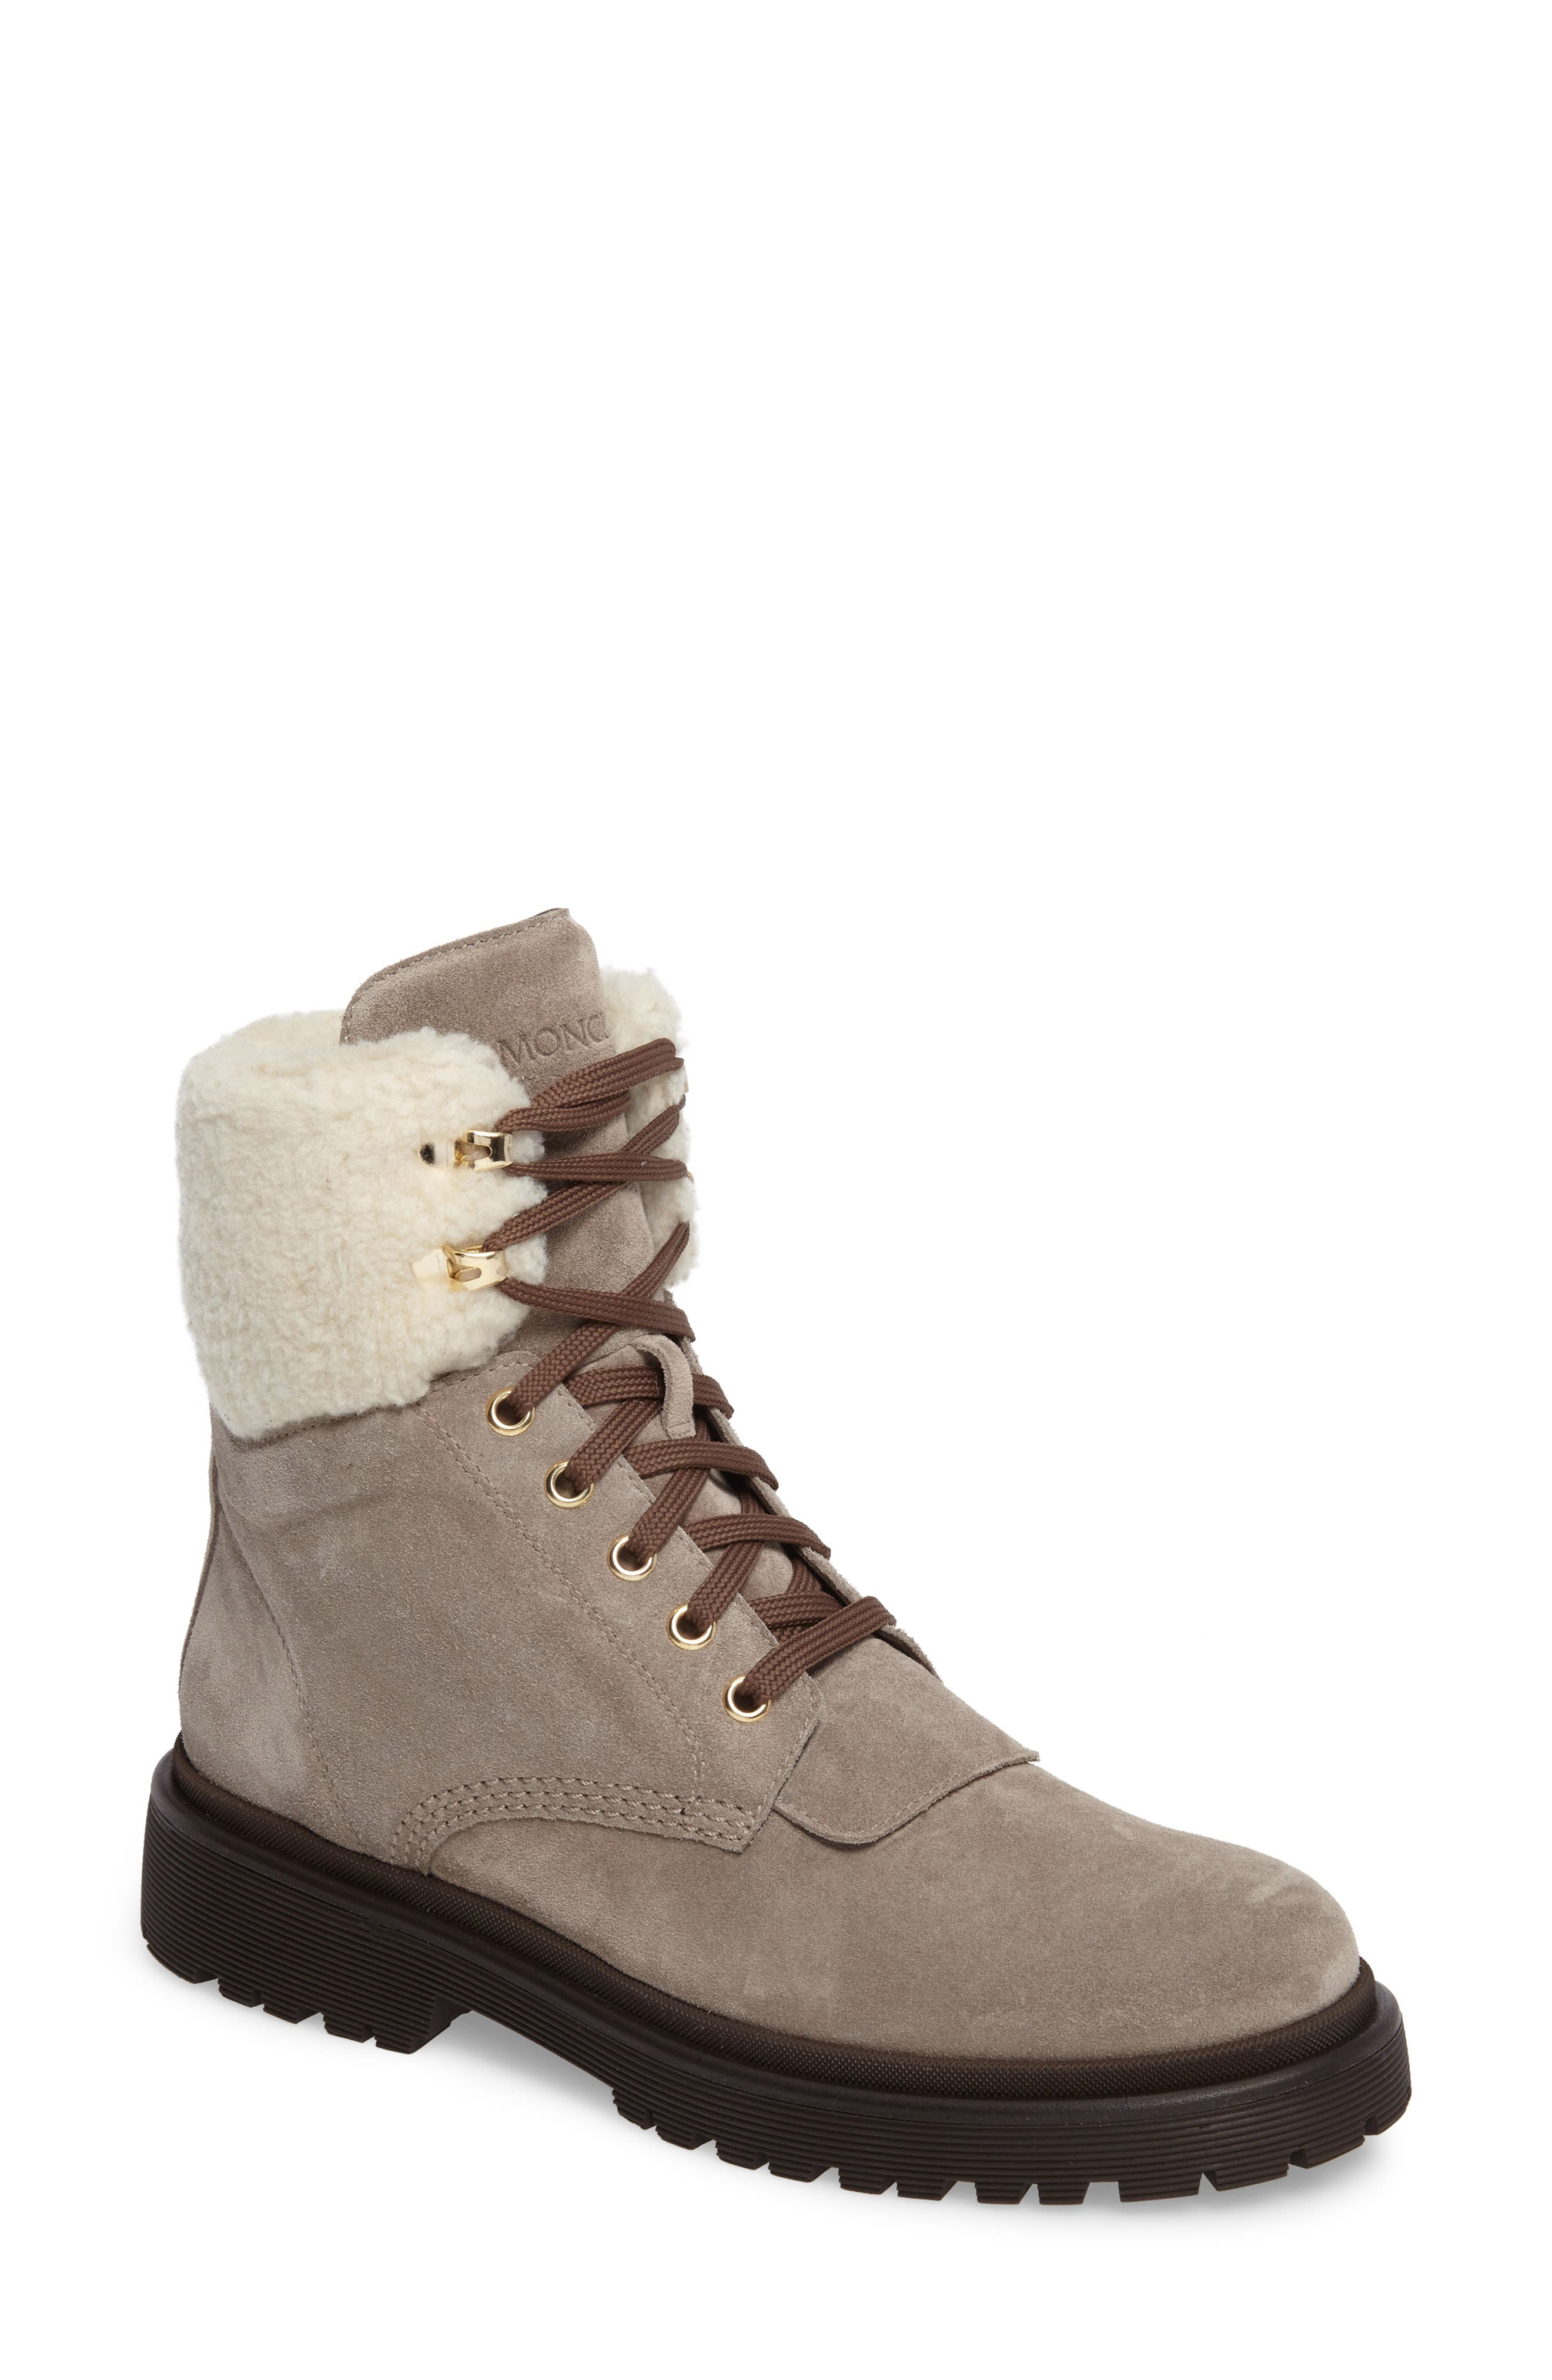 Alternate Image 1 Selected - Moncler Patty Scarpa Faux Shearling Cuff Boot (Women)